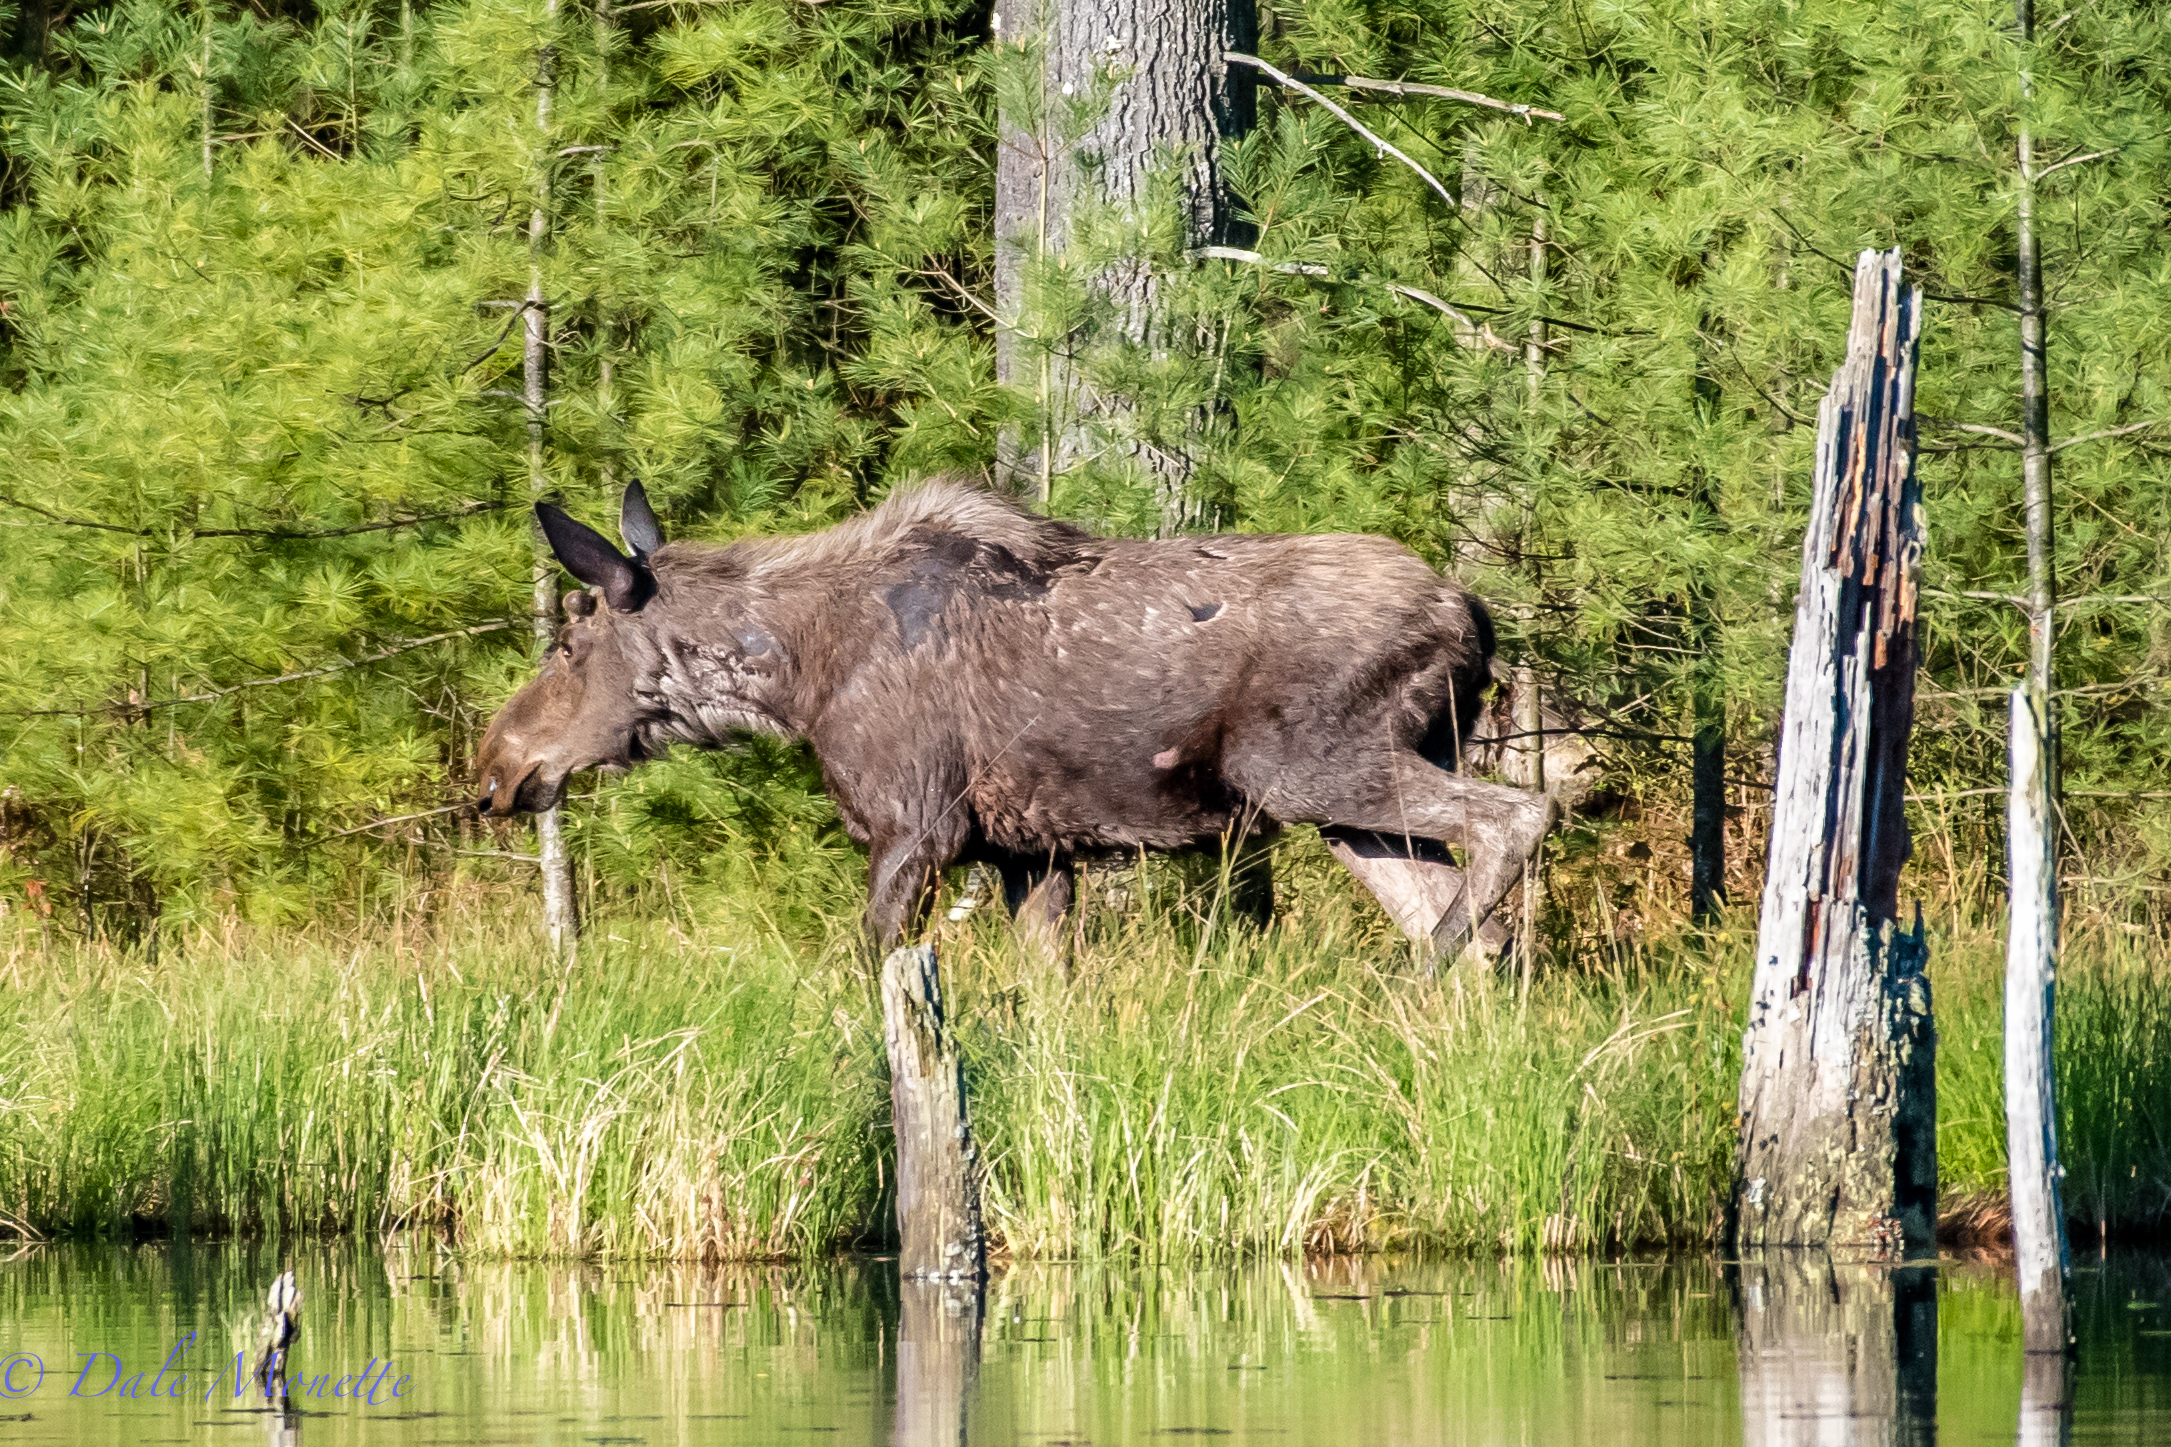 well well !!      Look who tromped right through the other side on my swamp today !!...... A young bull moose looking pretty ratty while shedding his winter coat. You can see his new antlers already starting. He didnt hang around long..... 5/9/16